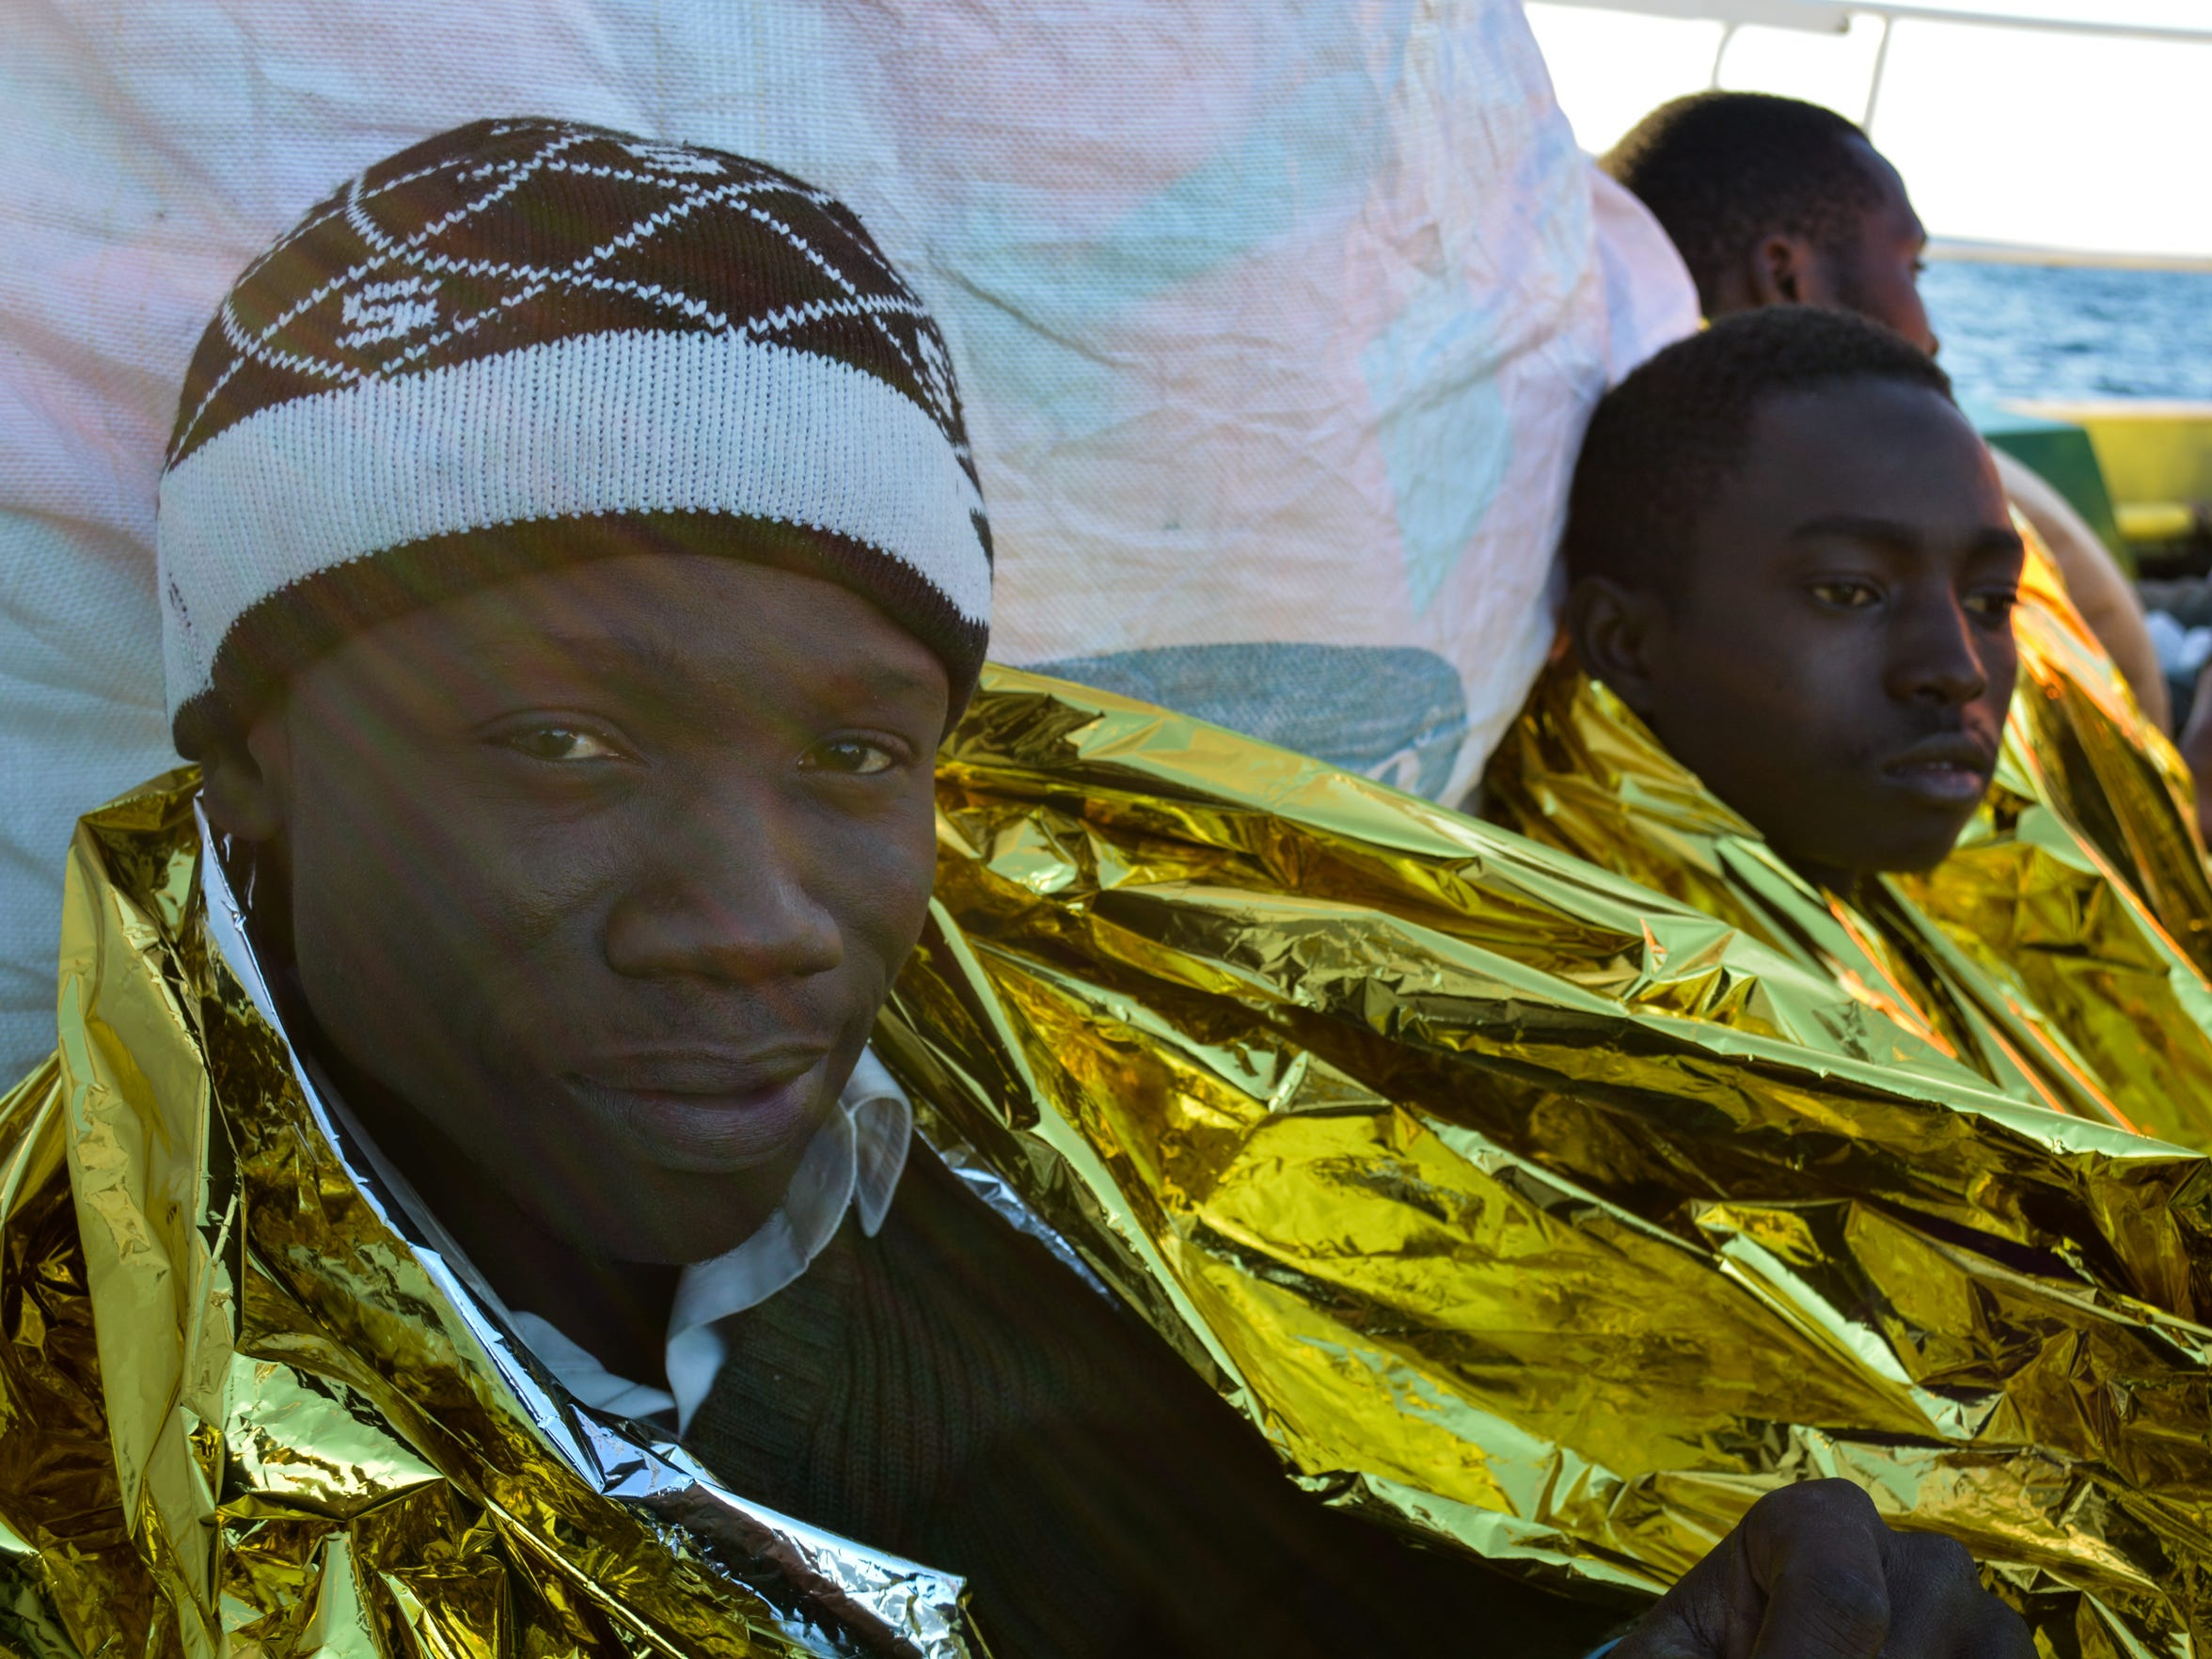 The sun shines on Sali Baldel, 19, from Senegal, just